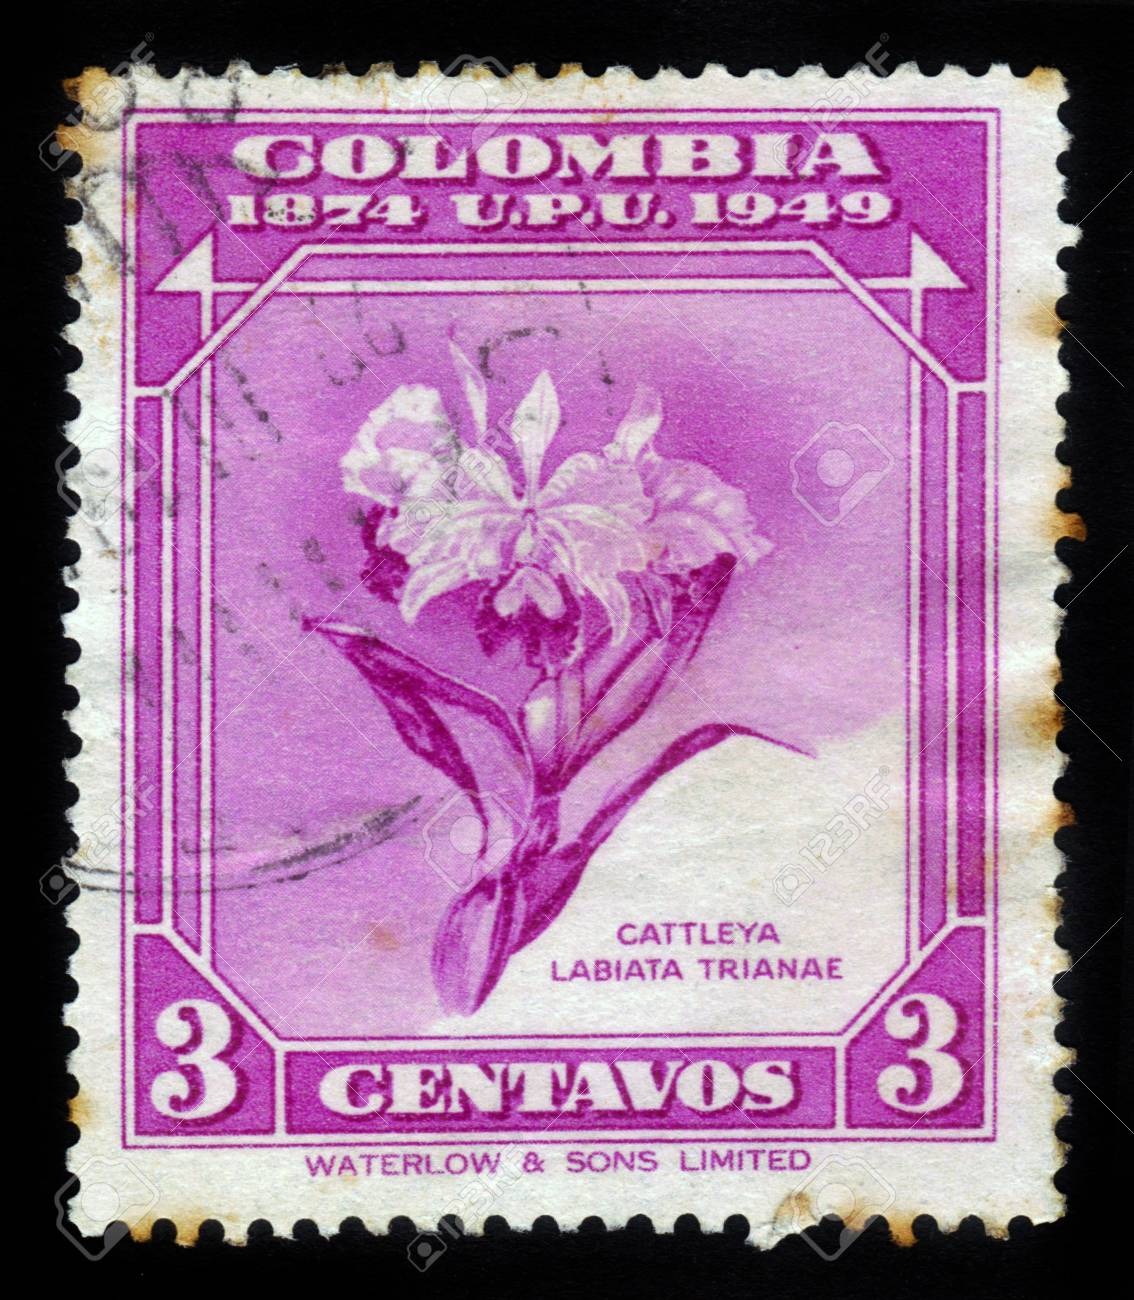 Colombia Circa 1950 Stamp Printed By Colombia Shows Flower